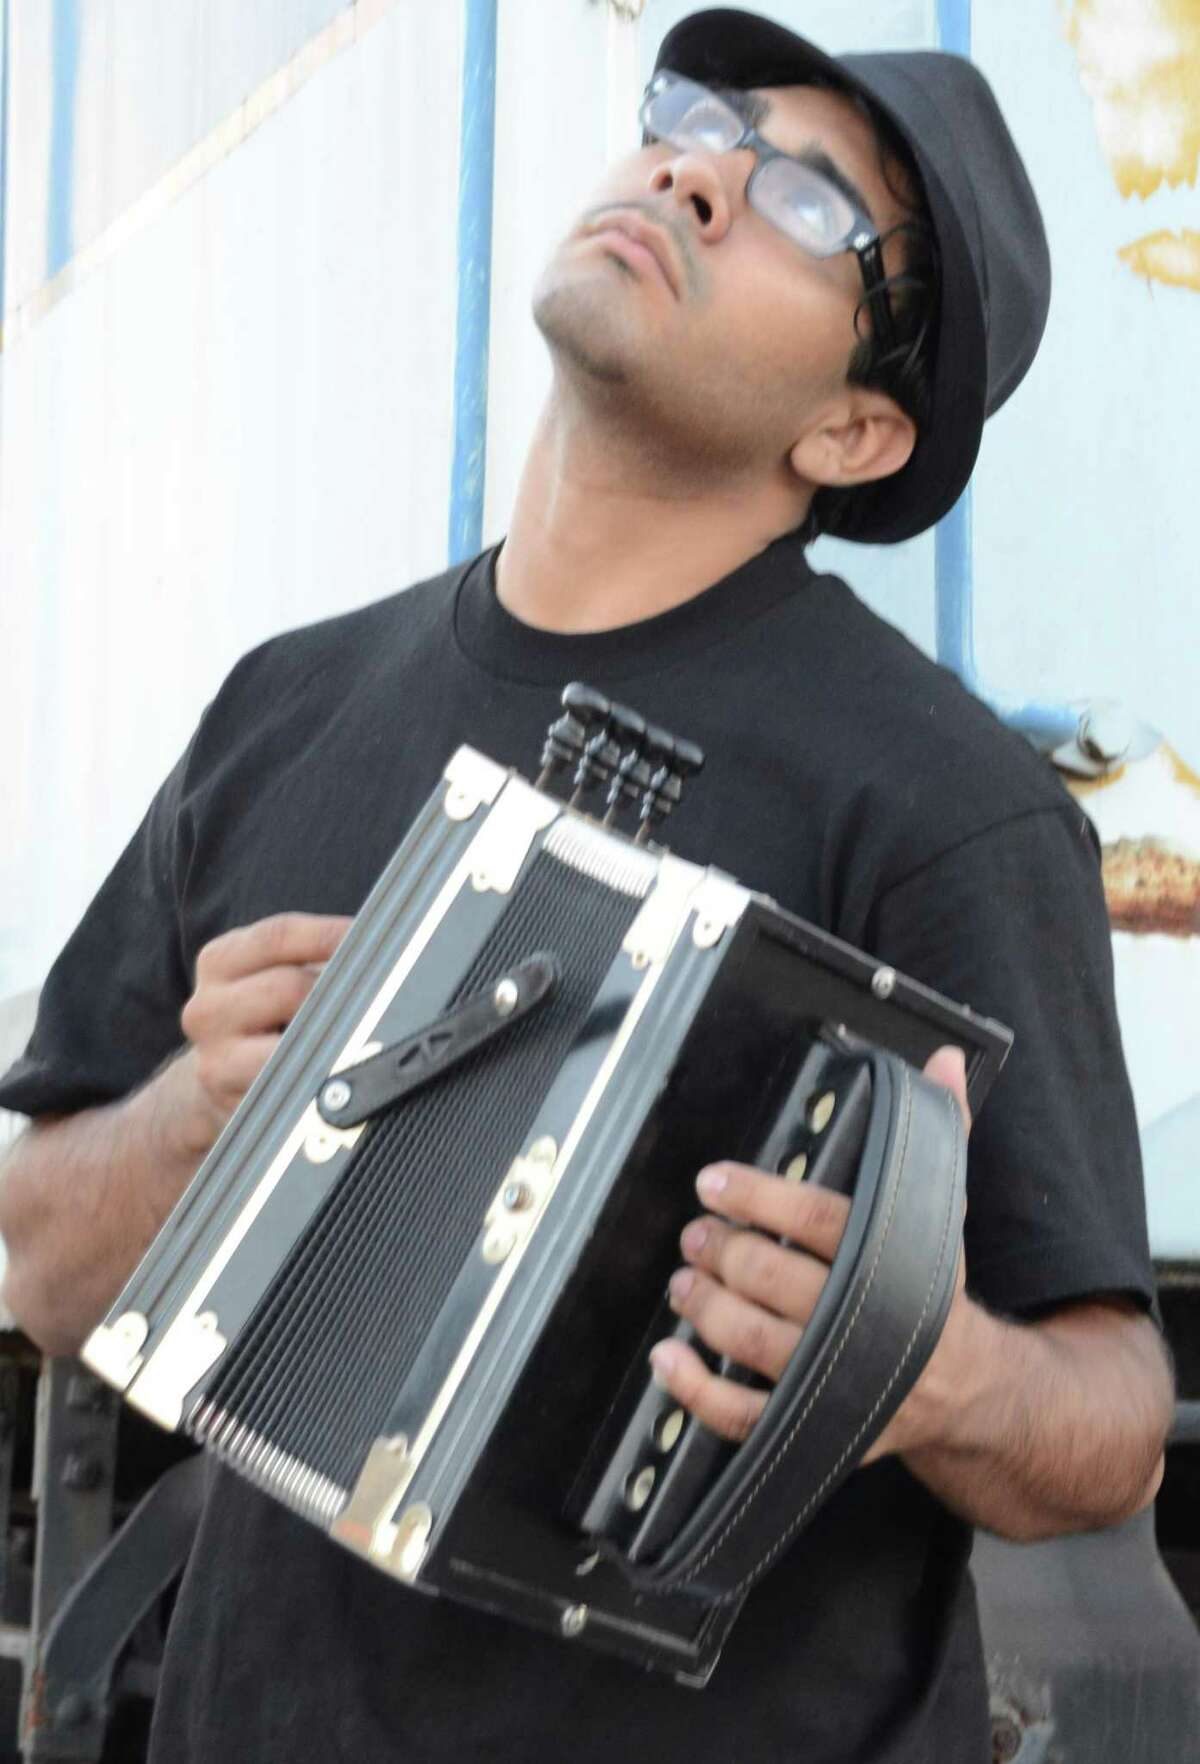 NOLA Nights featuring Ruben Moreno & the Zydeco Re-evolution is scheduled for 7:30-9:30 p.m. Saturday, July 24, at Sugar Land Town Square, 15958 City Walk. For more information go to https://tinyurl.com/tymx457v. Shown here is band leader Ruben Moreno.